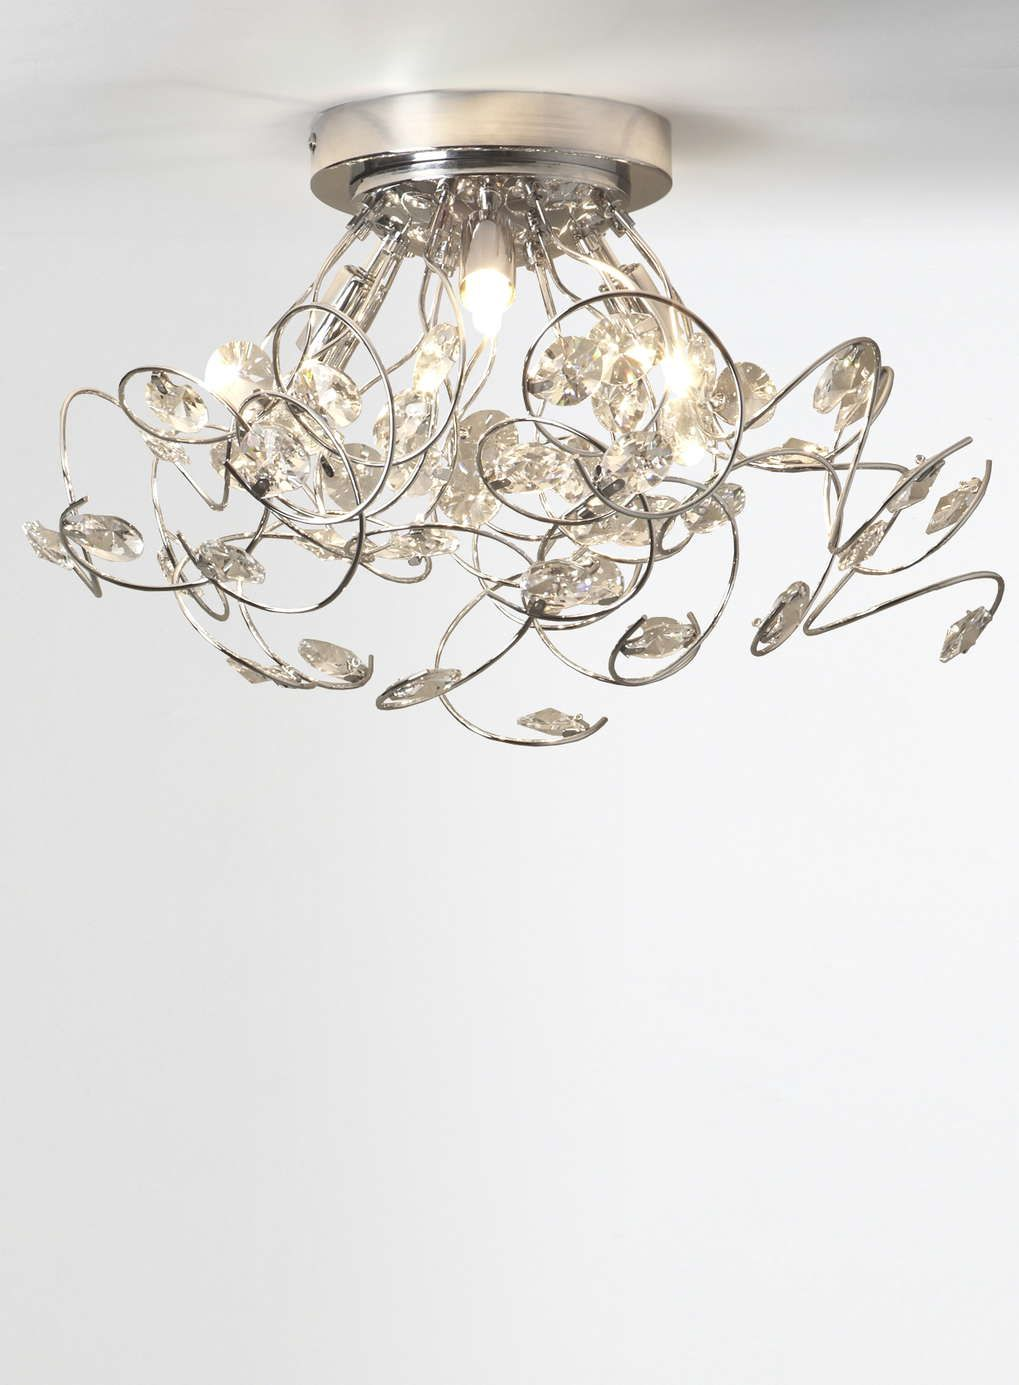 Bhs Lila Wall Lights : Lila Flush Ceiling Light - BHS Living room Pinterest Flush ceiling lights, Bhs and Ceiling ...